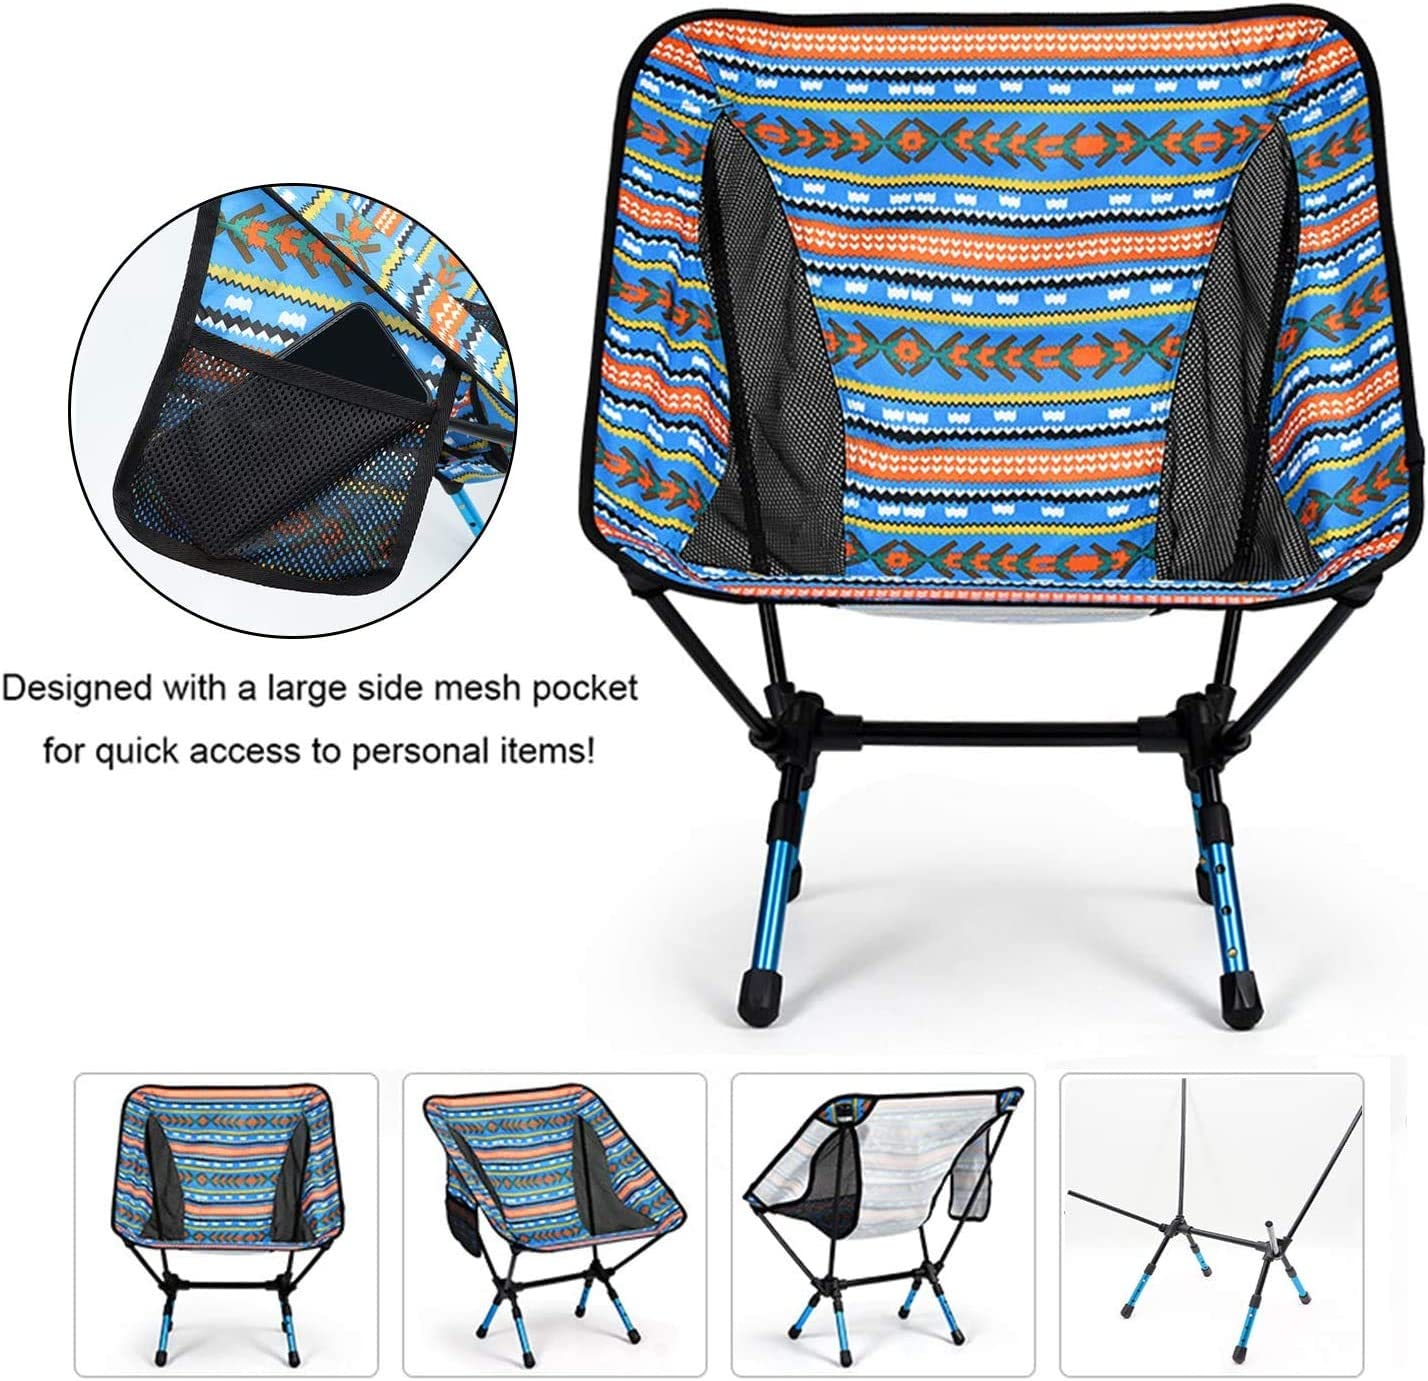 Beach YUANBAI Ultralight Portable Folding Camping Chairs,Portable Compact for Outdoor Camp Travel Lightweight Backpacking Picnic Festival Hiking